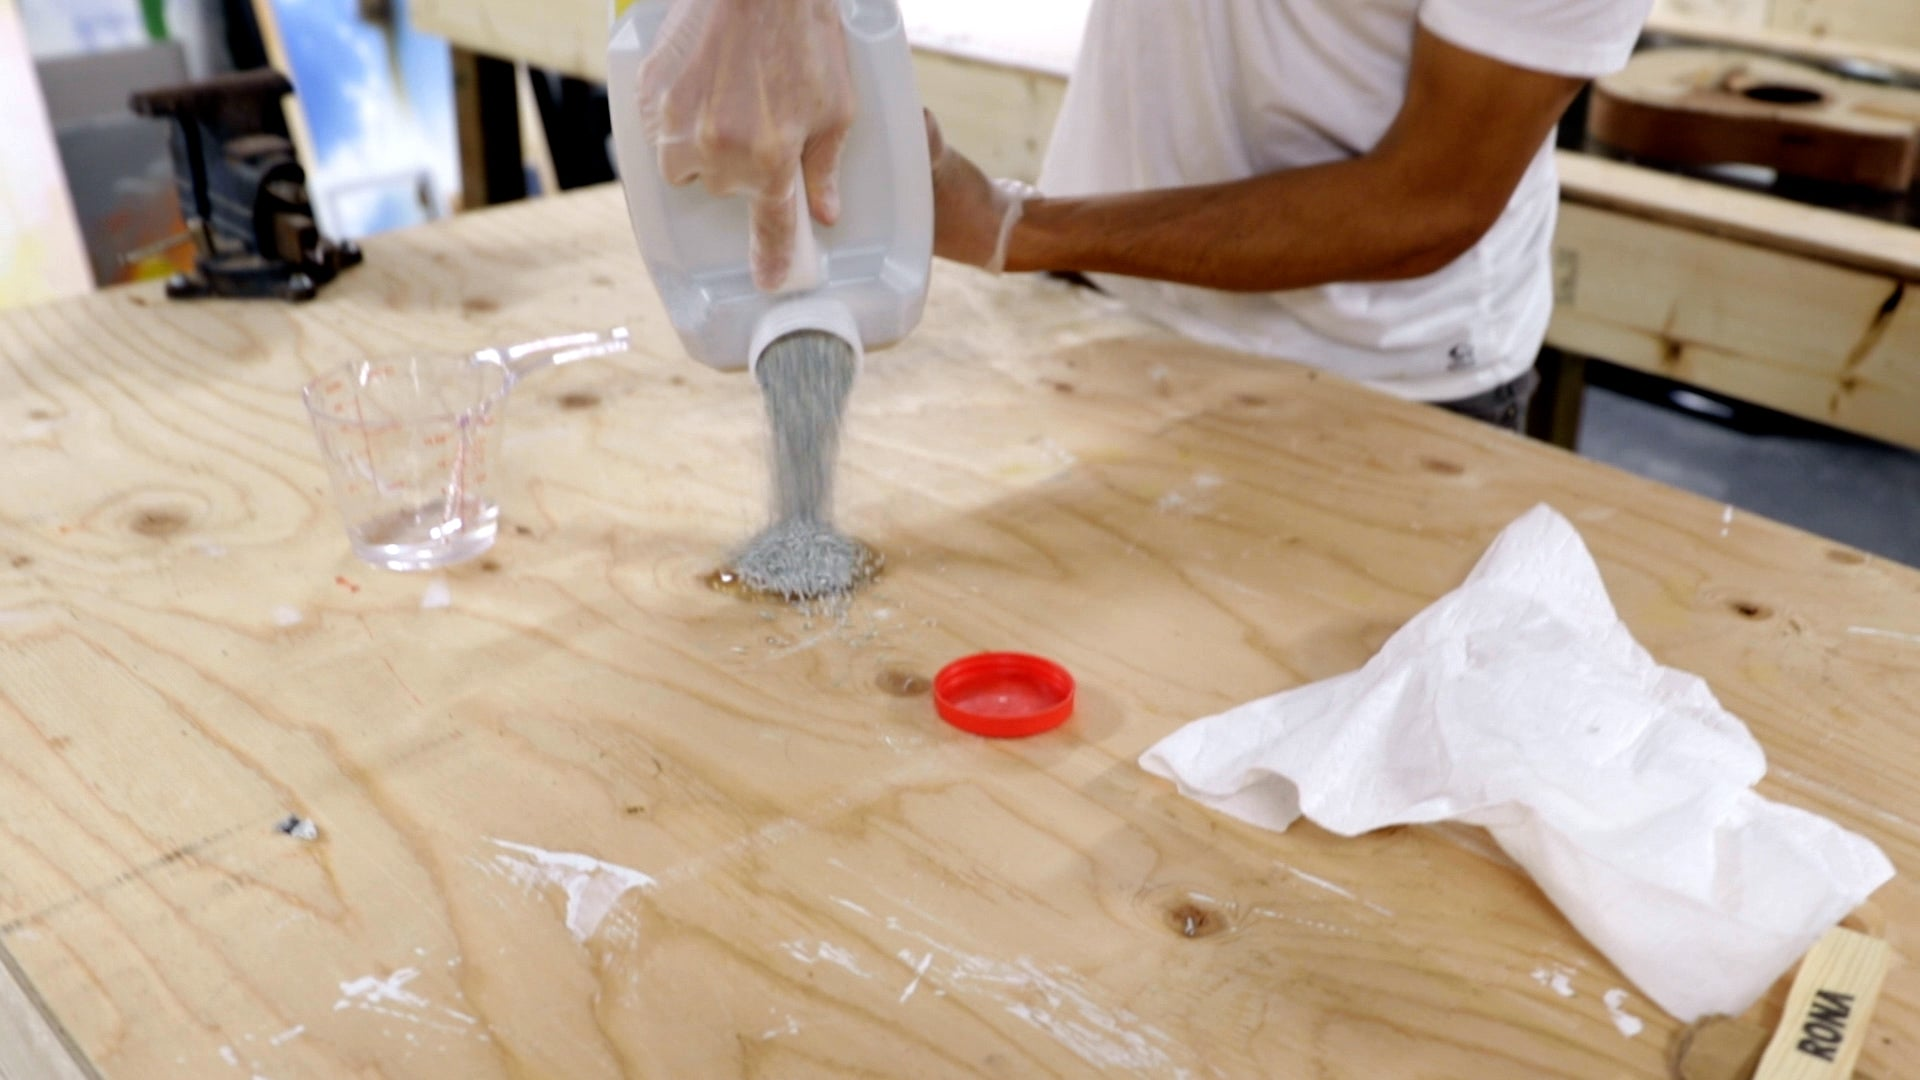 pour kitty litter on resin spill to clean up